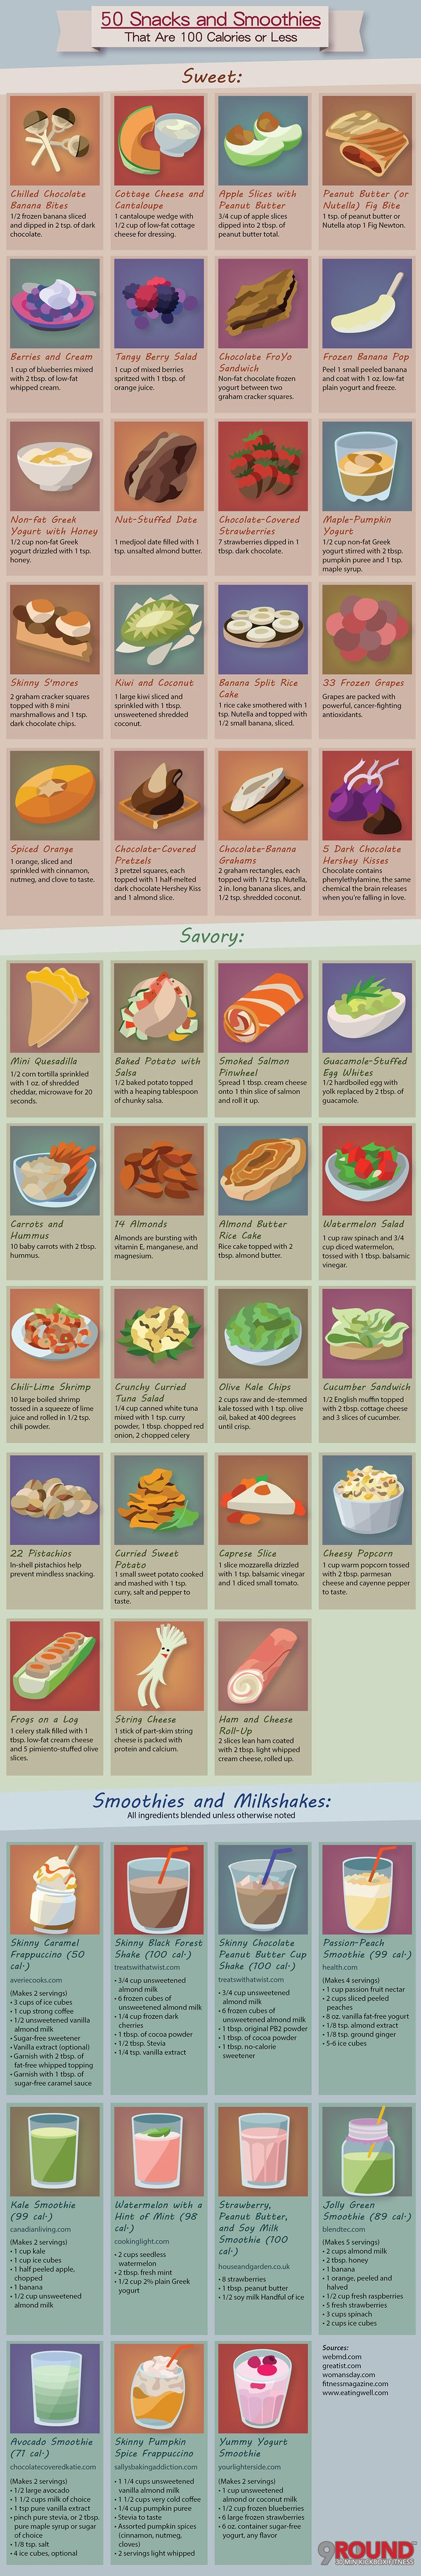 50 Snacks and Smoothies That Are 100 Calories or Less - 9round.com - Infographic